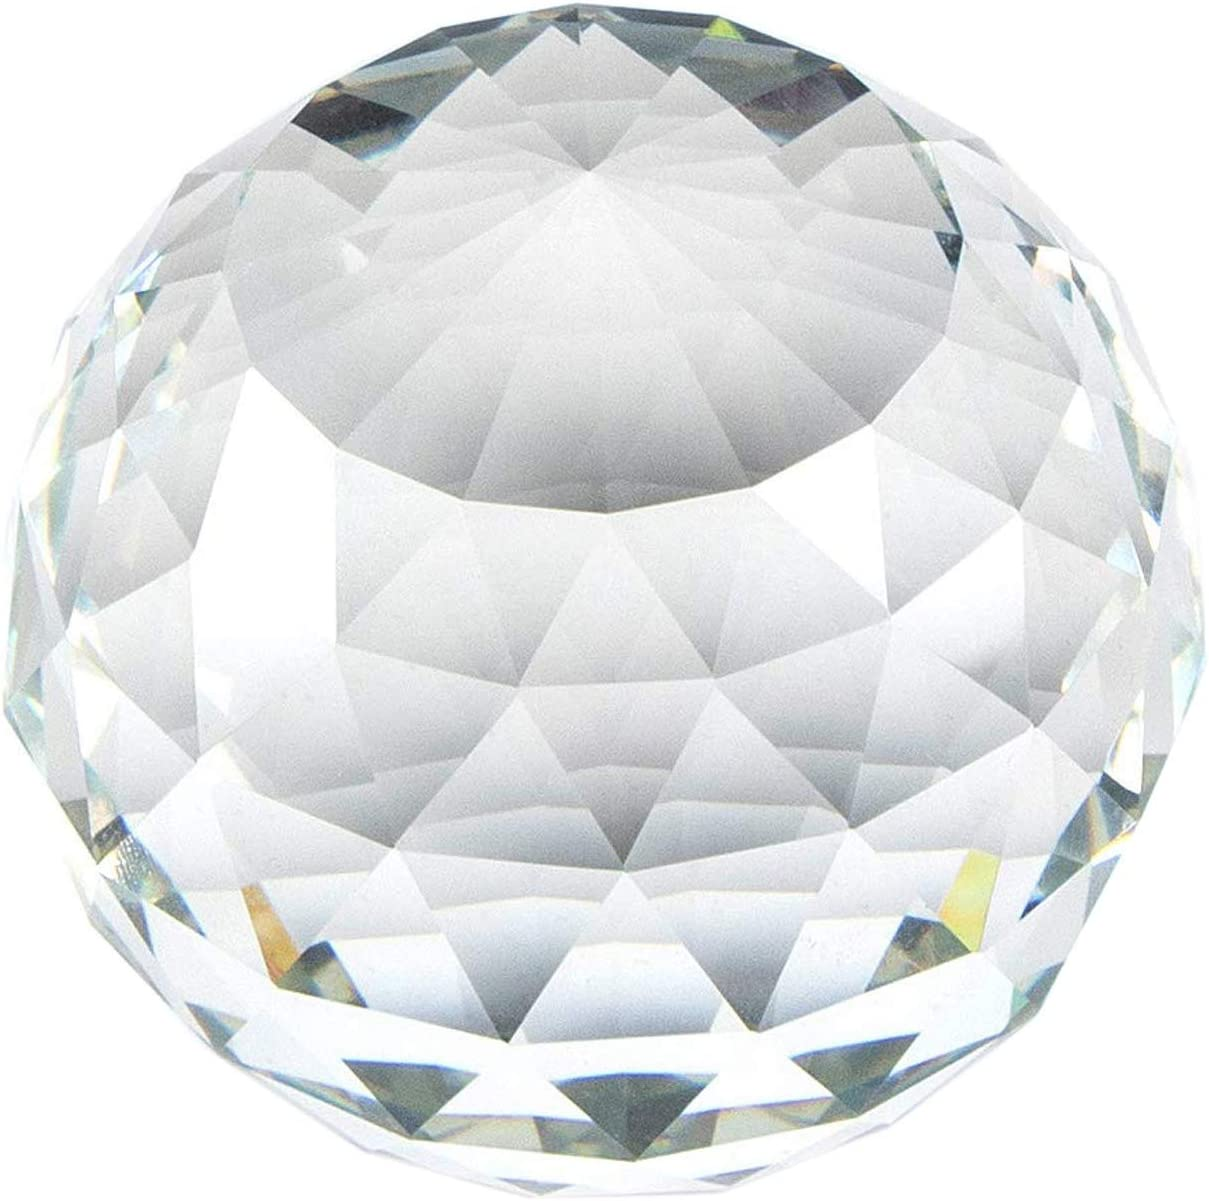 Qianwei K9 Clear Cut Crystal Glass Ball, 80mm Faceted Gazing Ball Crystals, Crystal Sphere Prisms Suncatcher for Home Decor, Window (80)